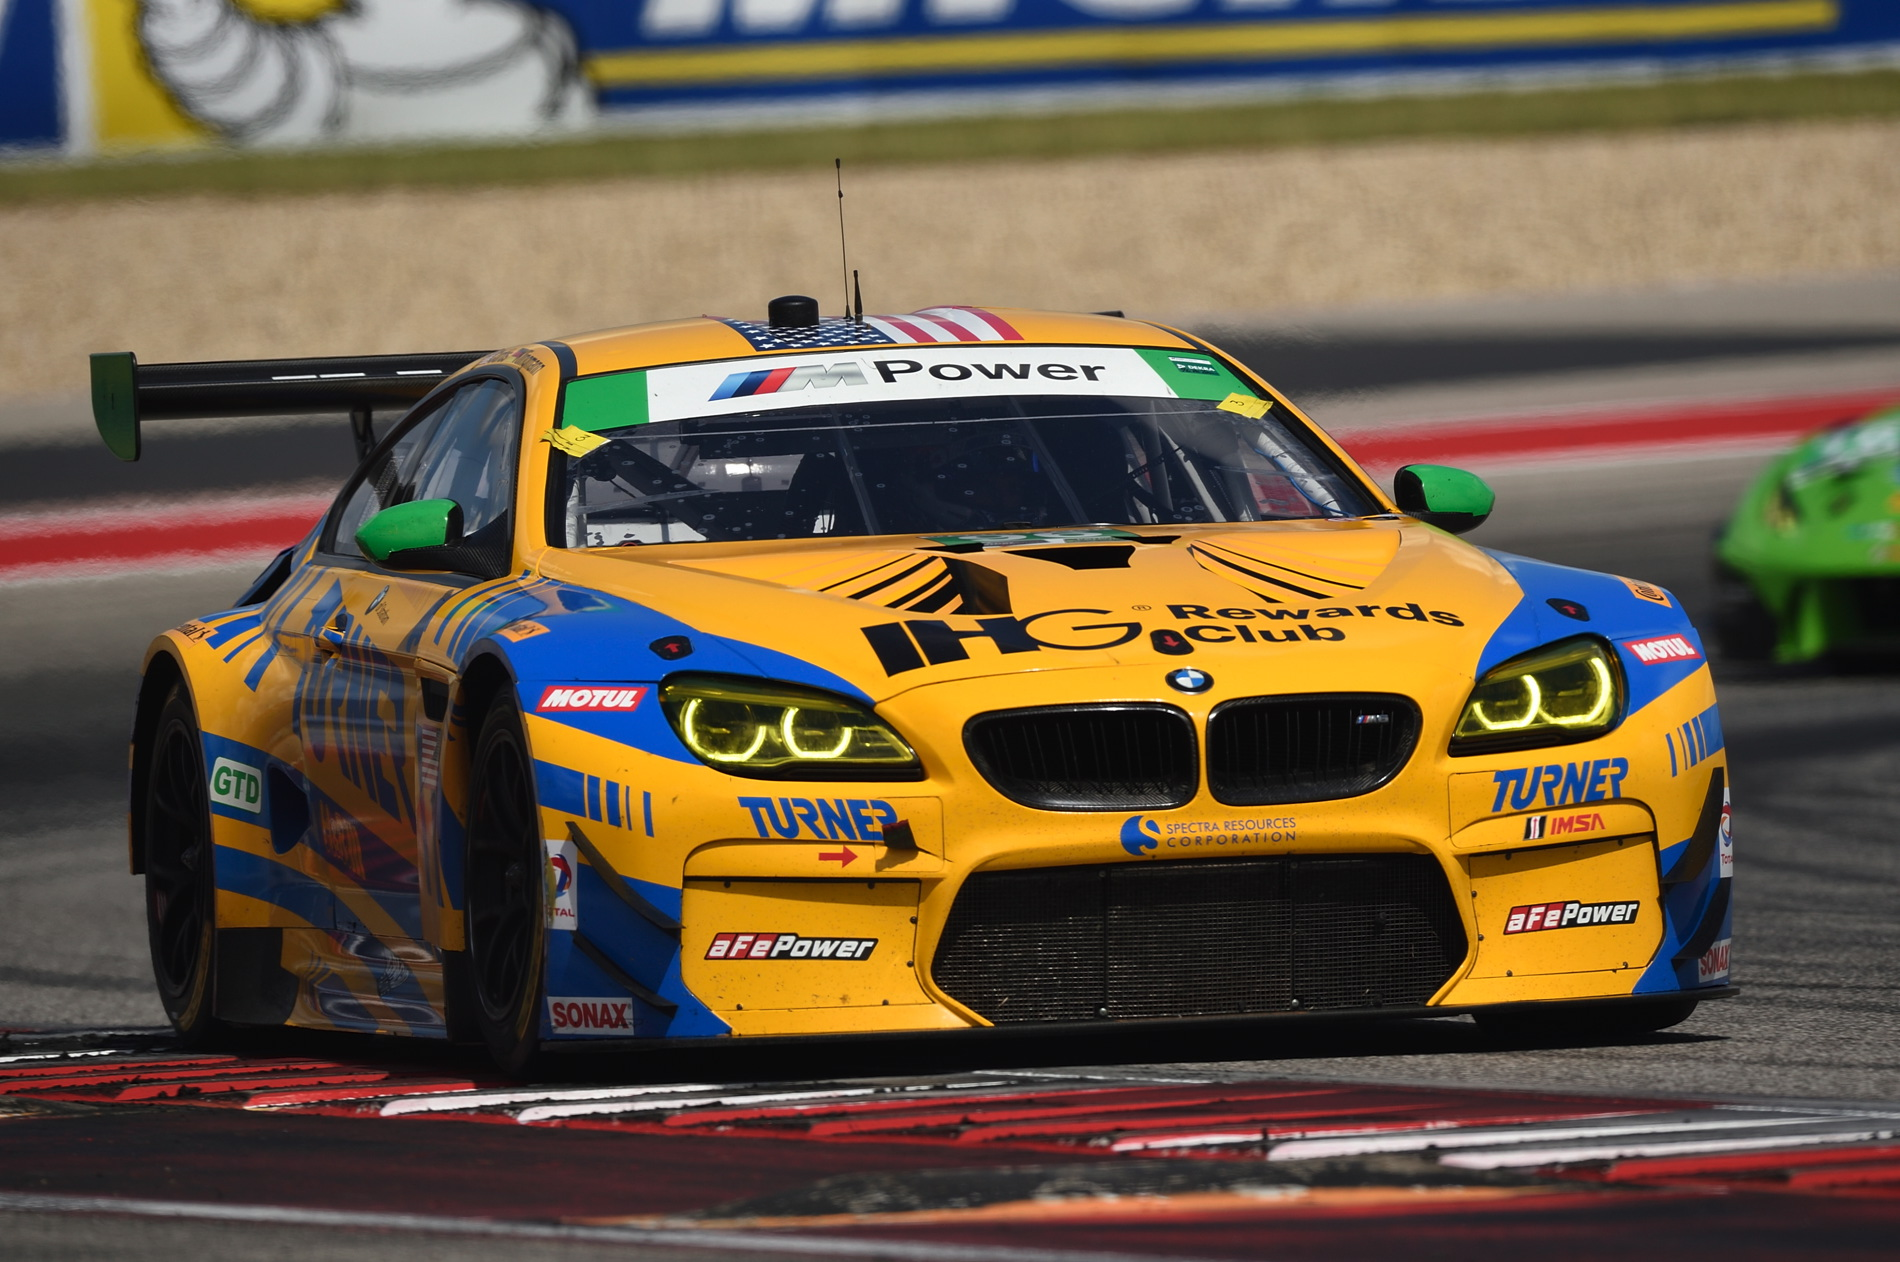 Lone Star Le Mans Race BMW M6 GT3 Turner 20